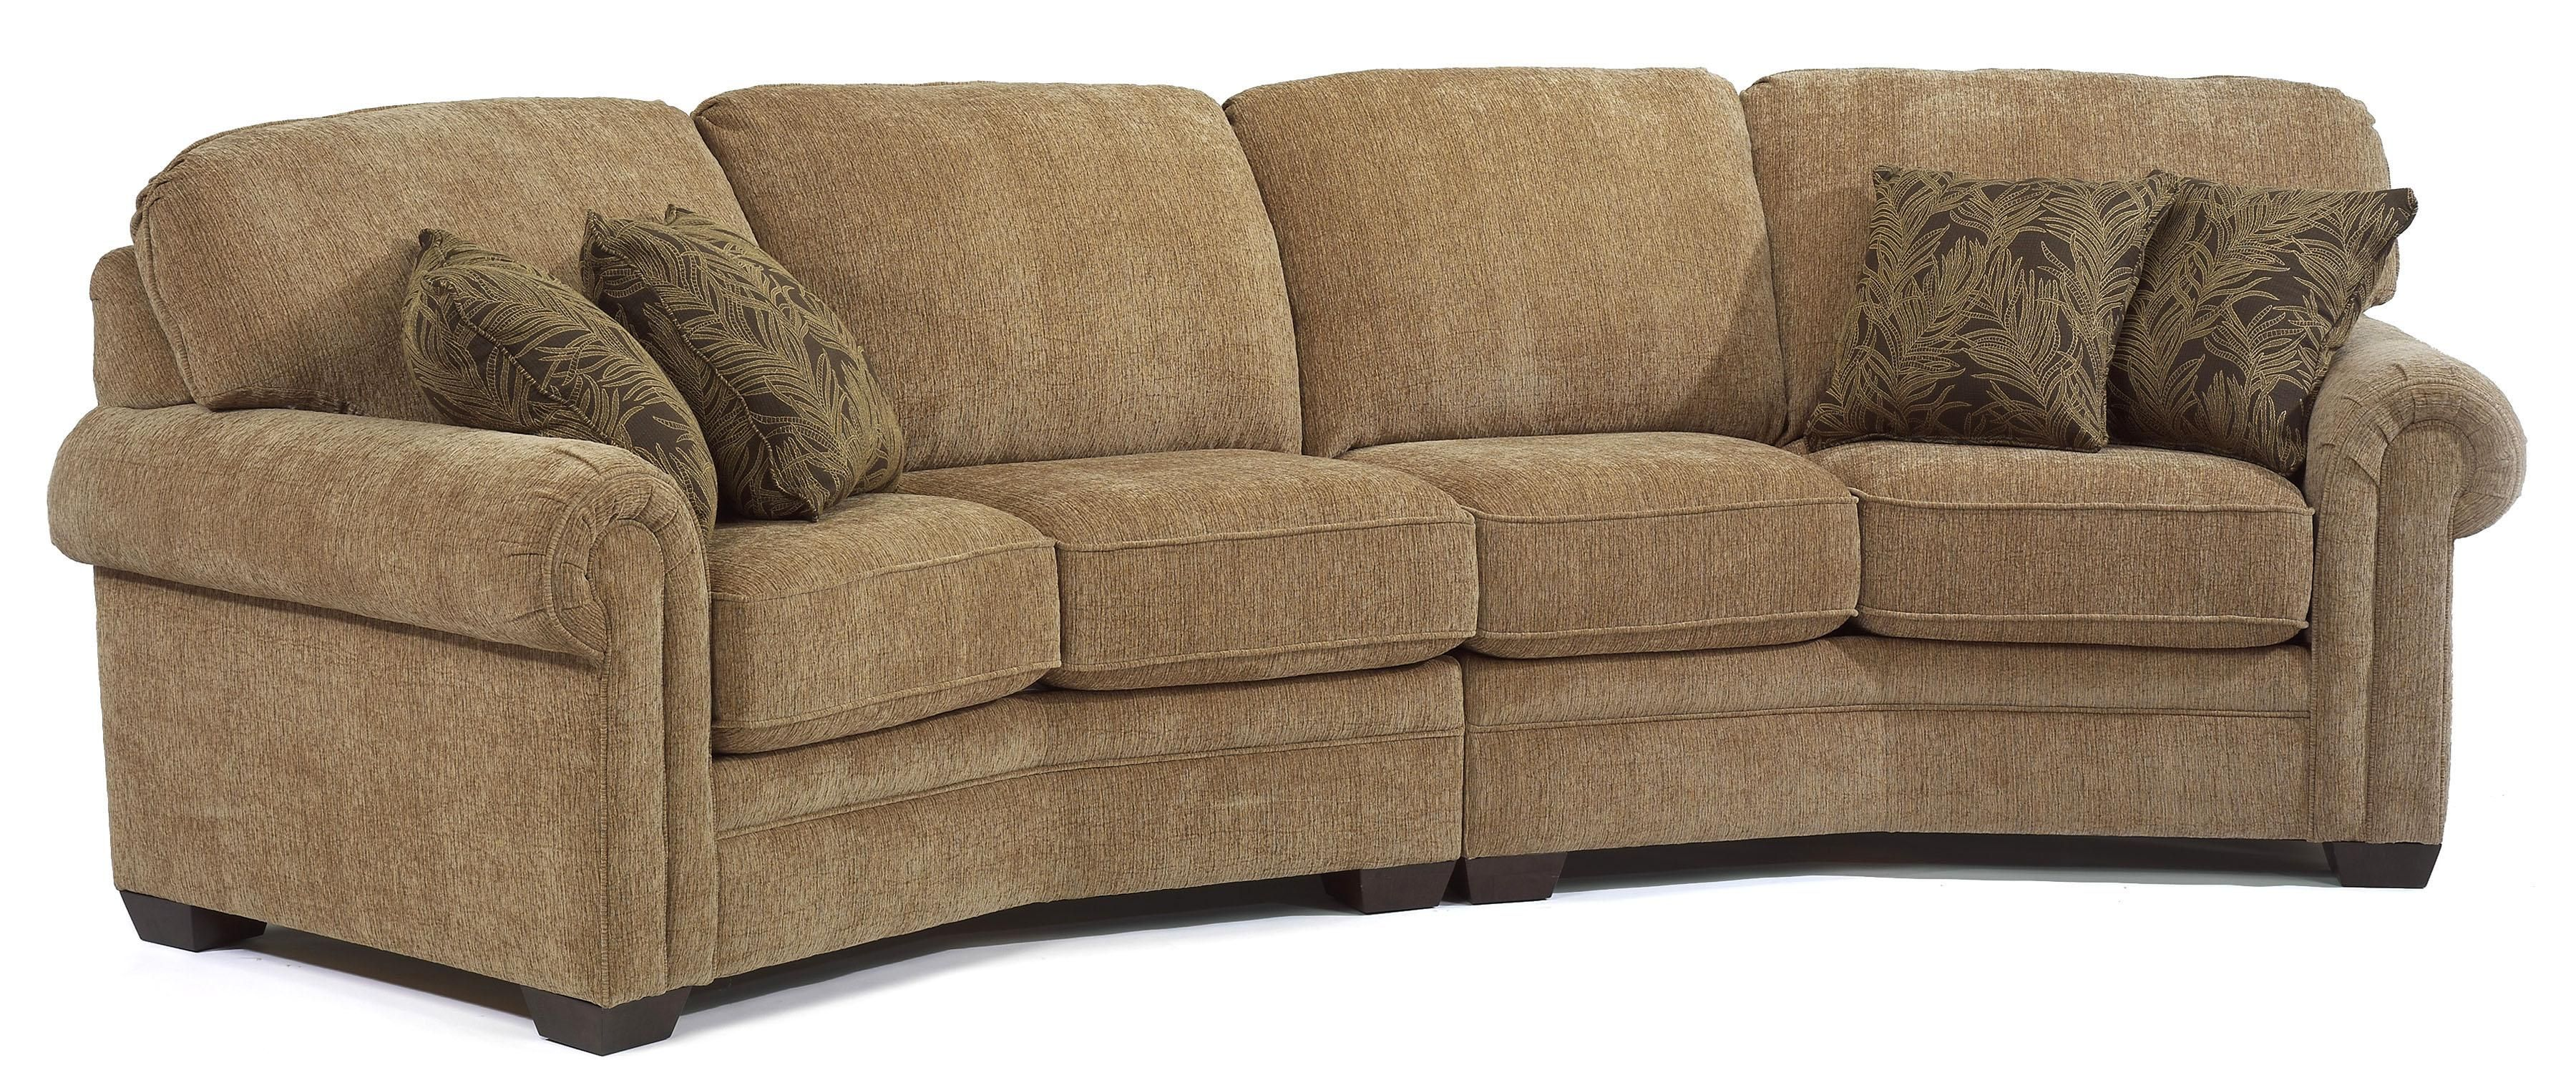 Harrison Conversation Sofa By Flexsteel 138x38x40